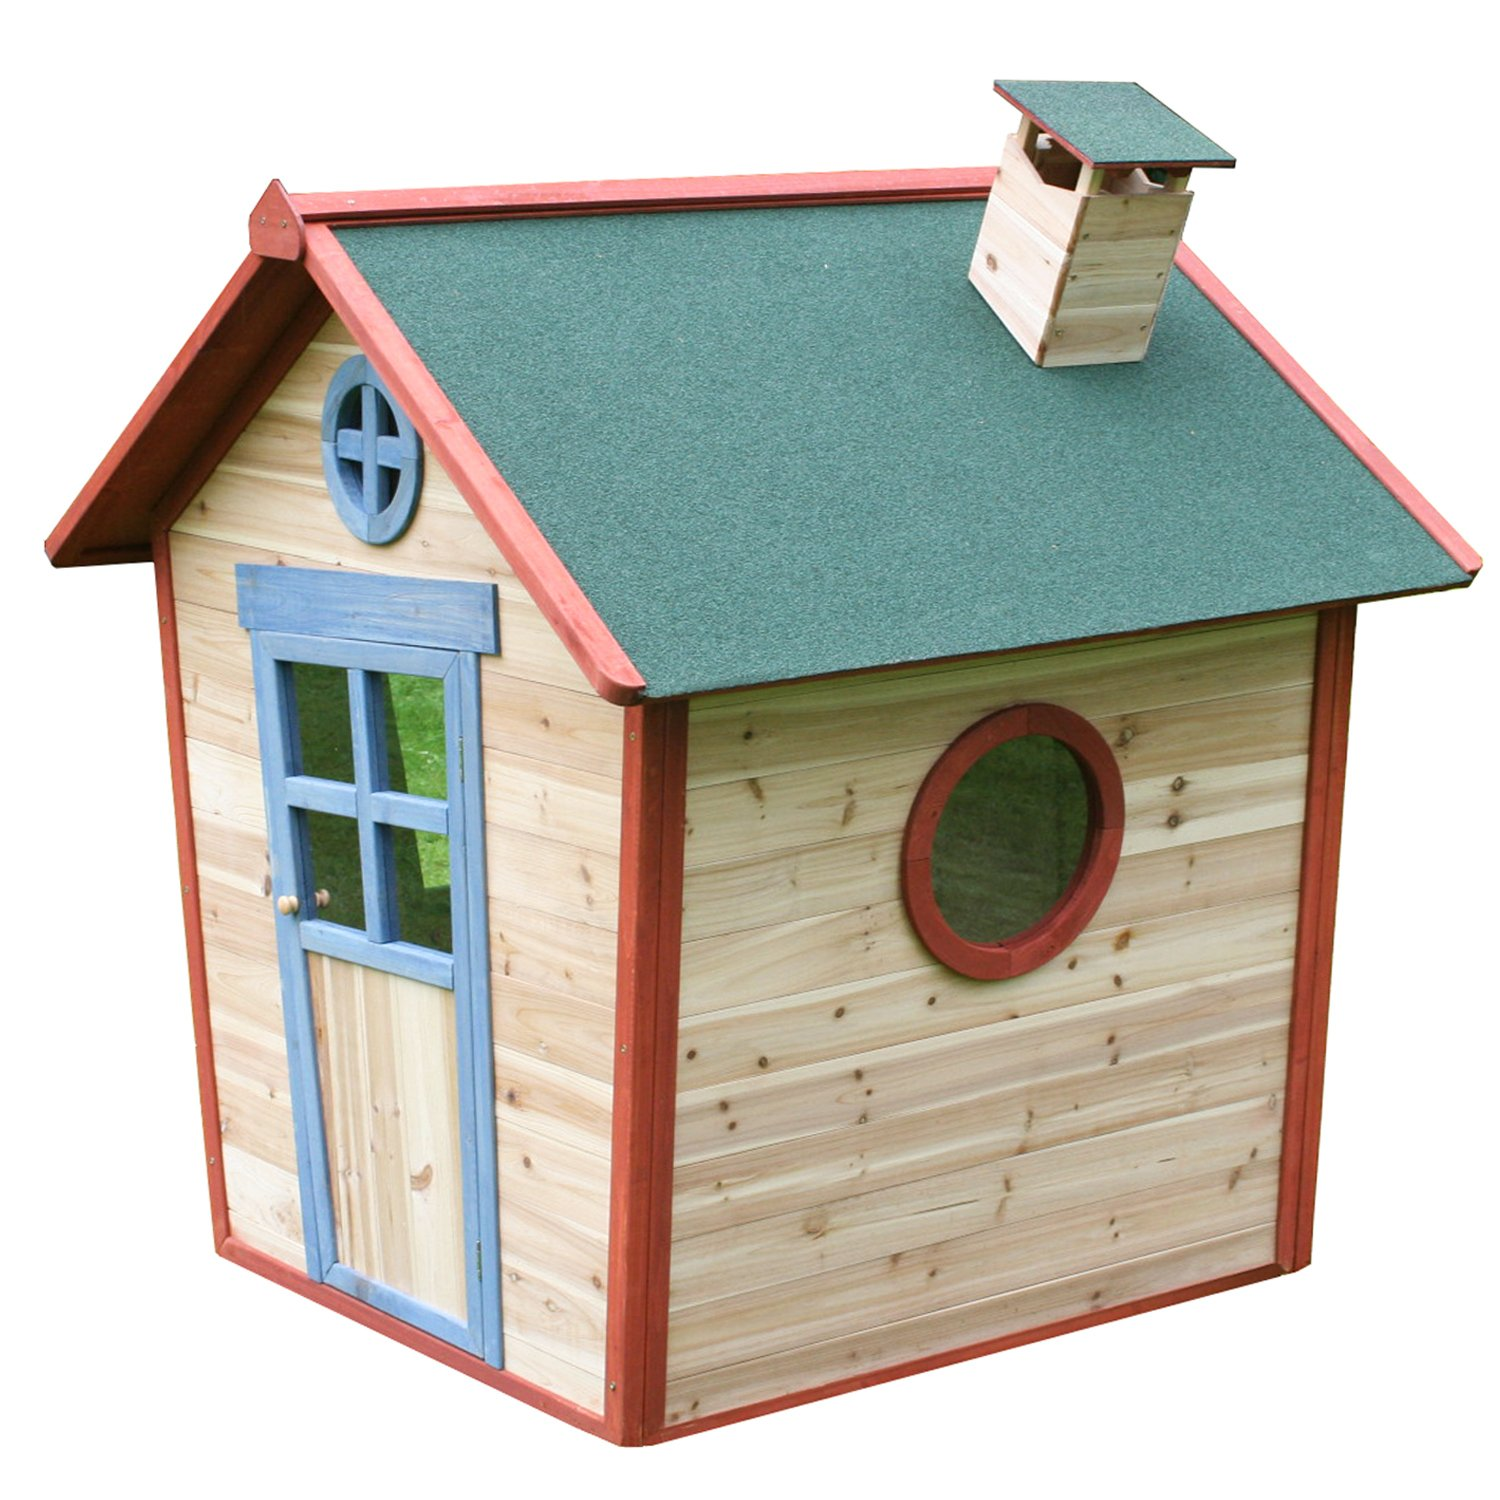 Redwood Lodge Childrens Wooden Playhouse, Painted Garden Crooked Wendy Play House, Thicker Fir Wood, 5 x 4 Big Game Hunters